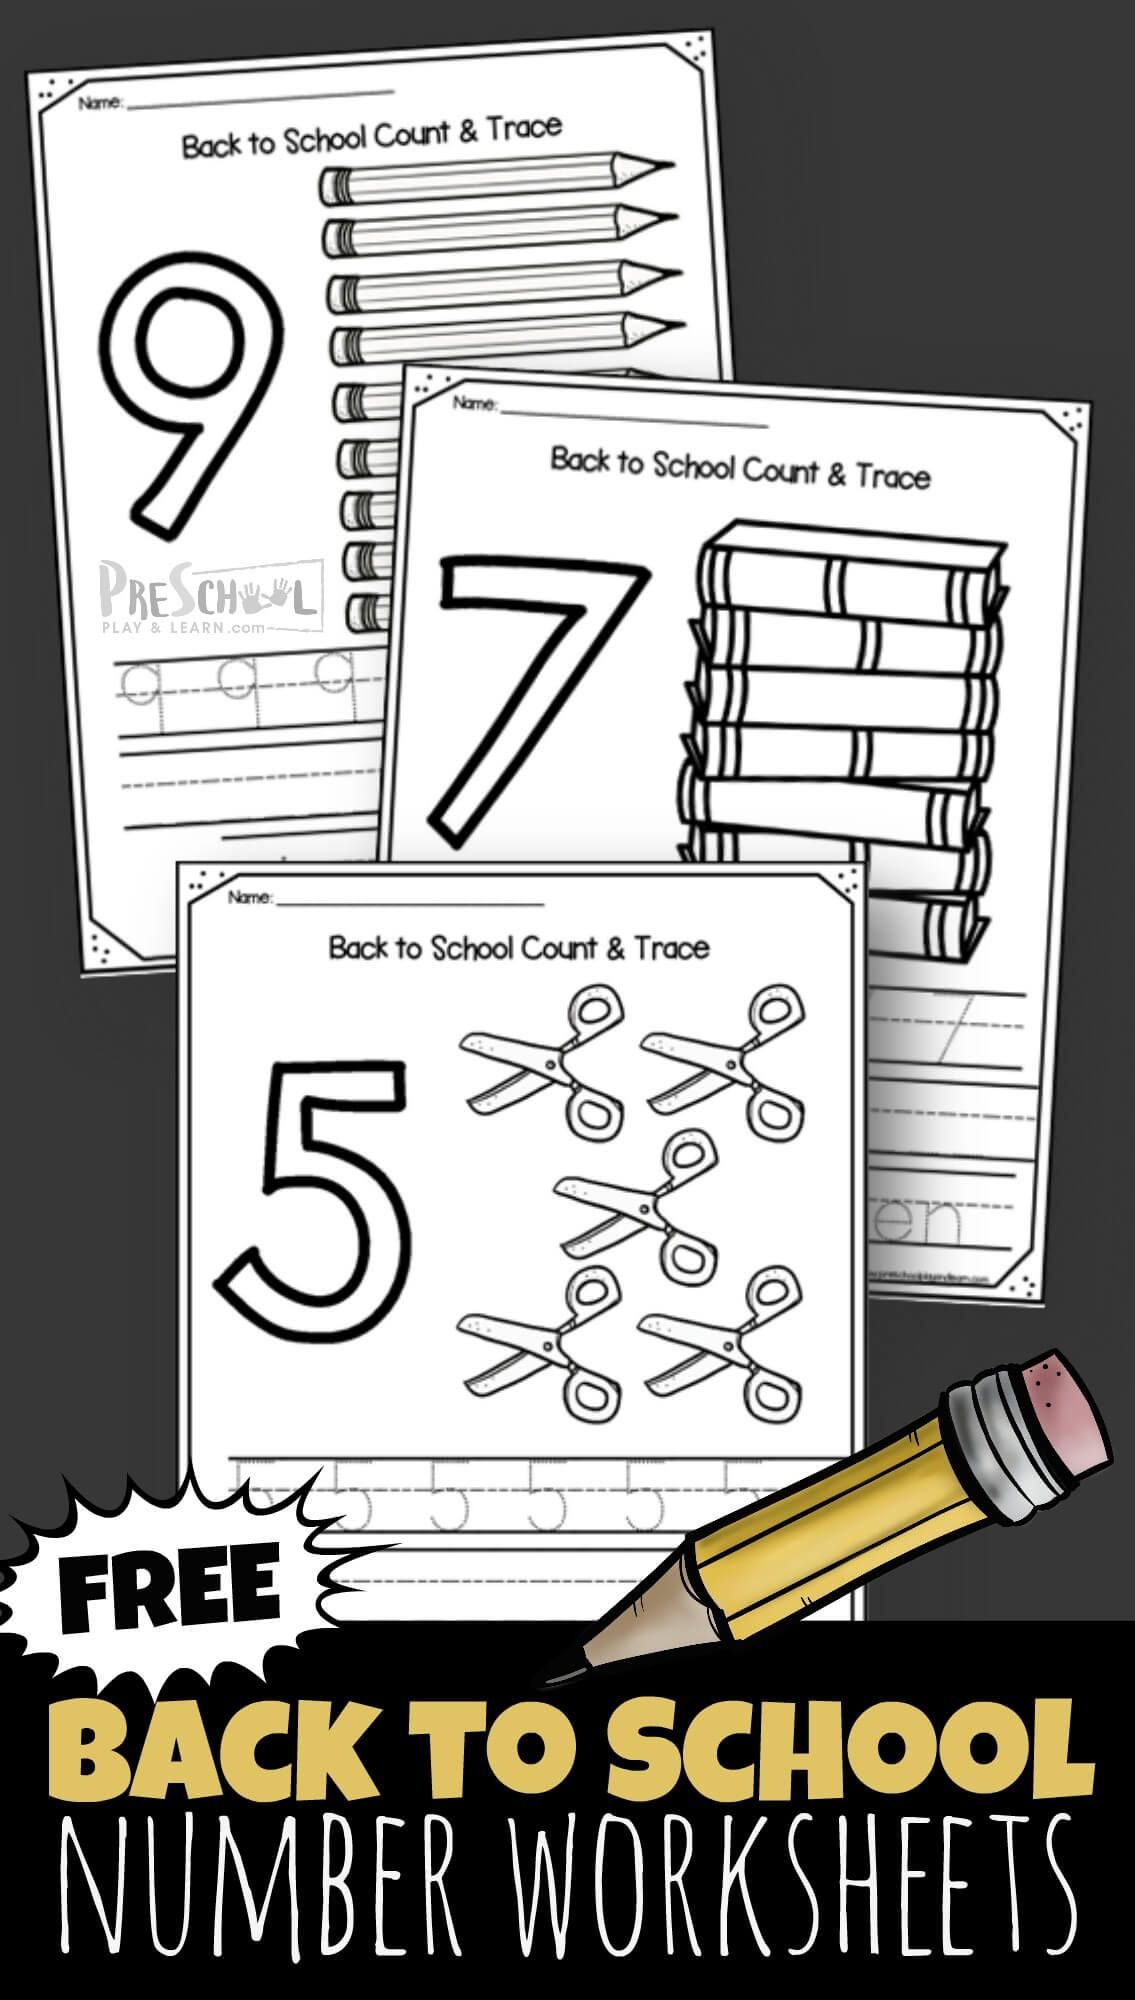 Back To School Number Worksheets